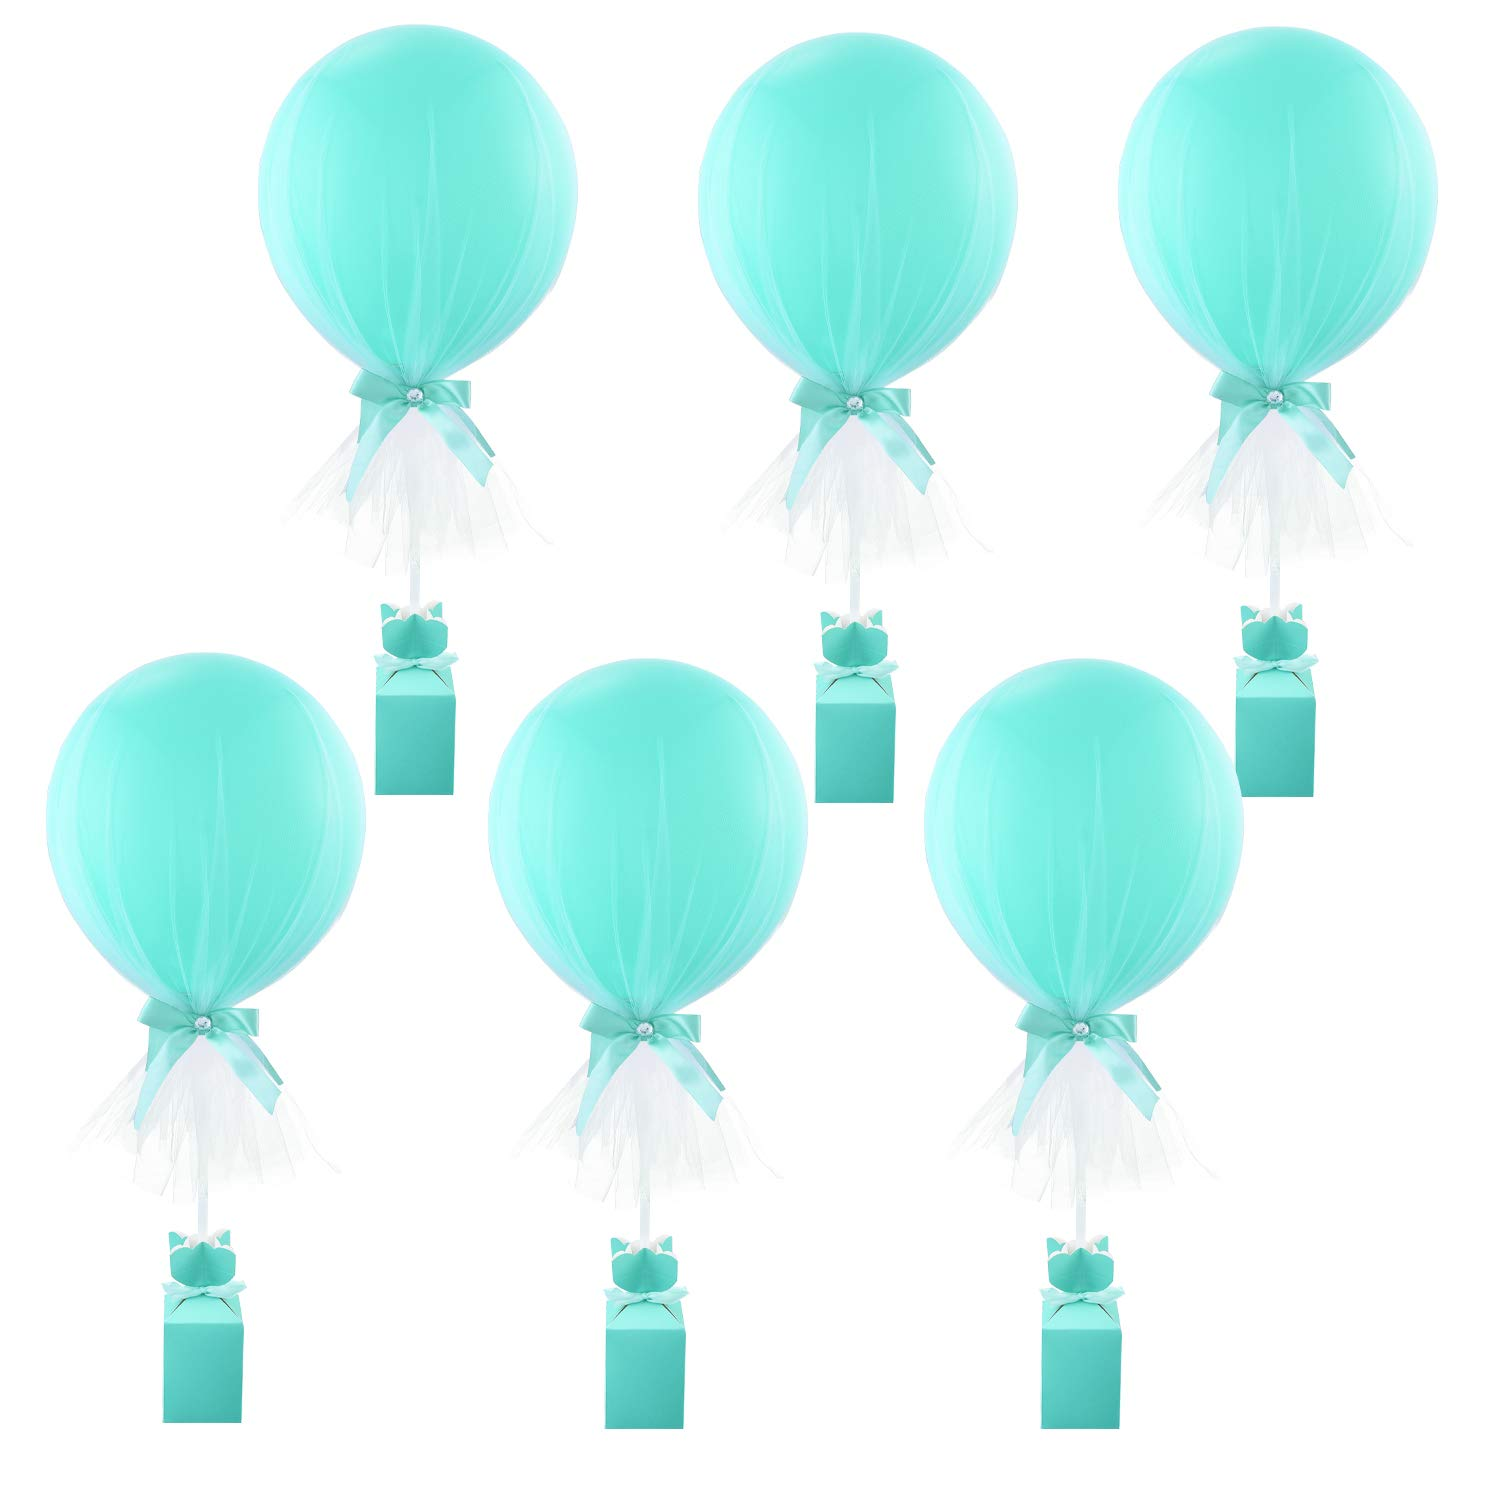 Tiffany Blue Tutu Tulle Balloons Baby Shower Decorations for Girl Birthday Weddings Parties Centerpiece Princess Party Table Balloons Tulle Cover,6 Pack